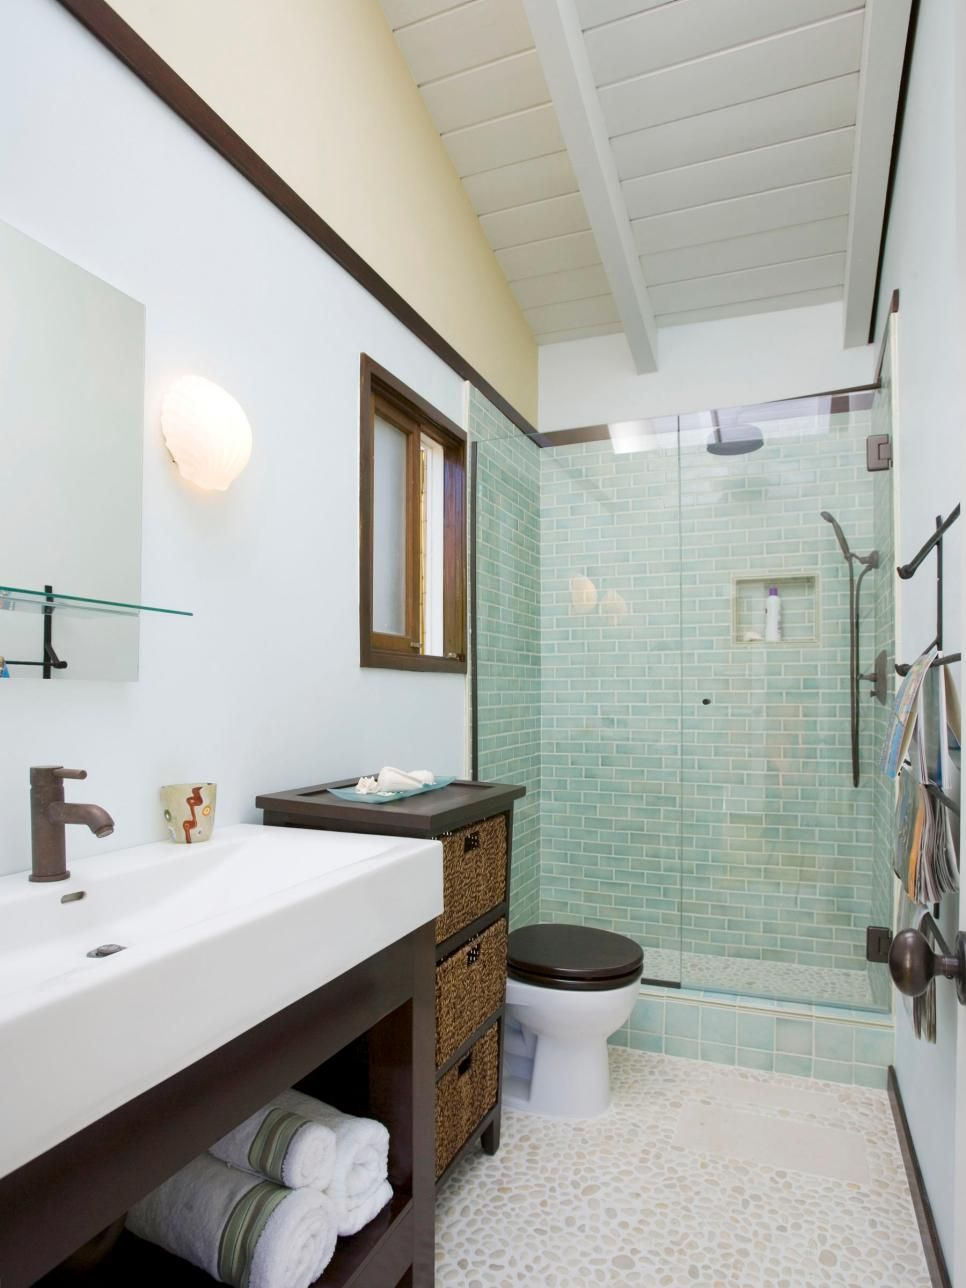 Three-Quarter Bathrooms | Bathroom design small, Small ...